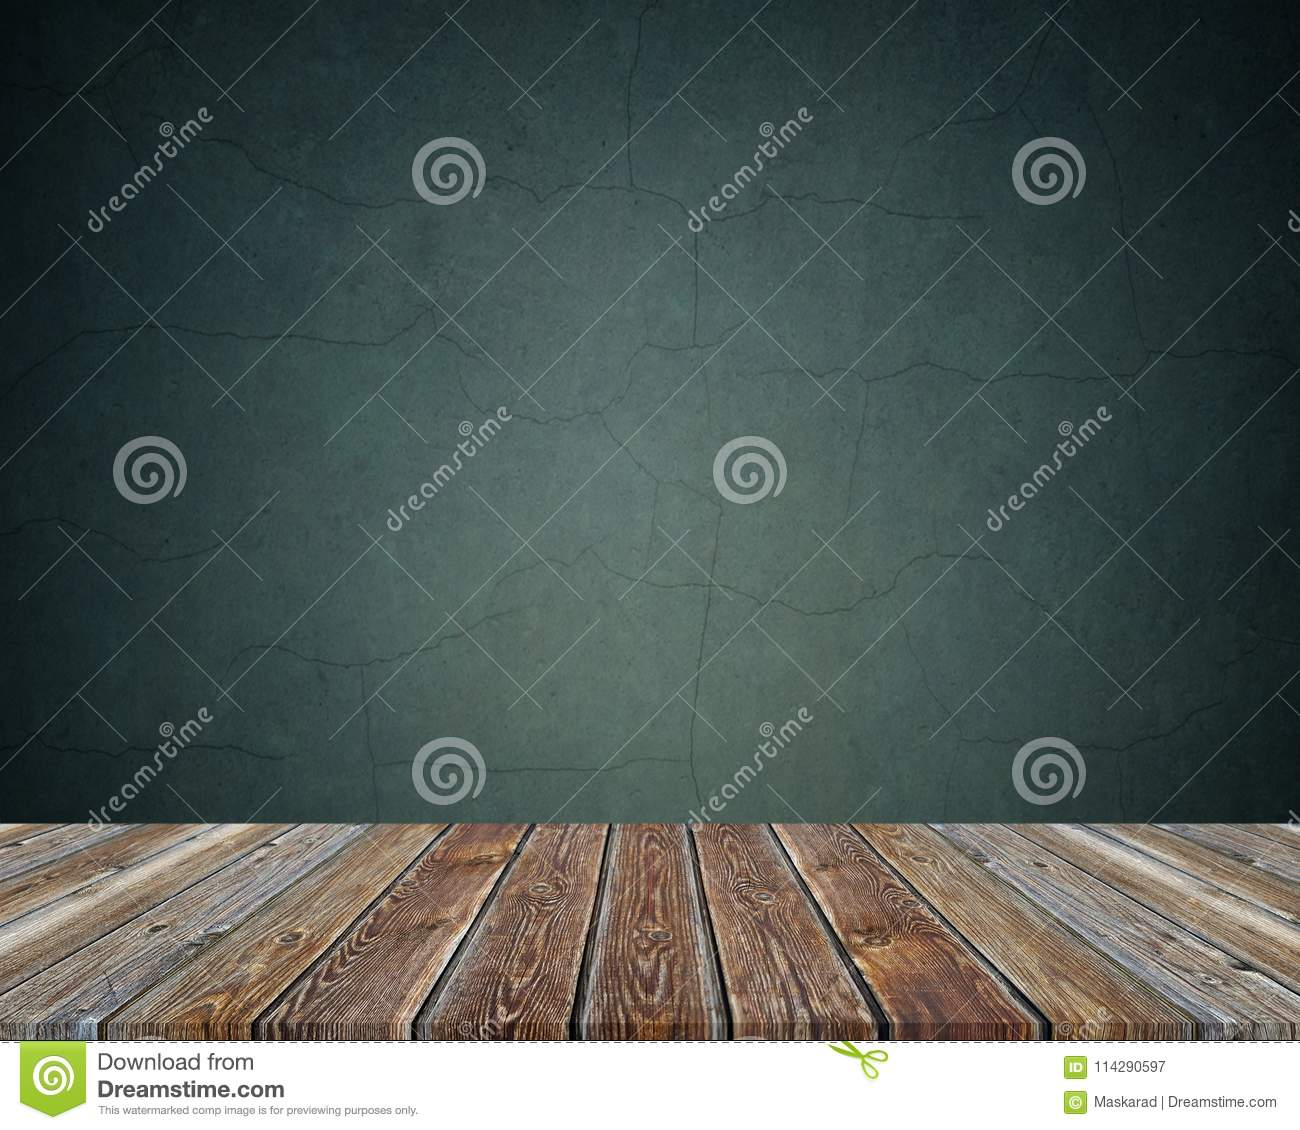 Empty wooden table over dark background. texture.